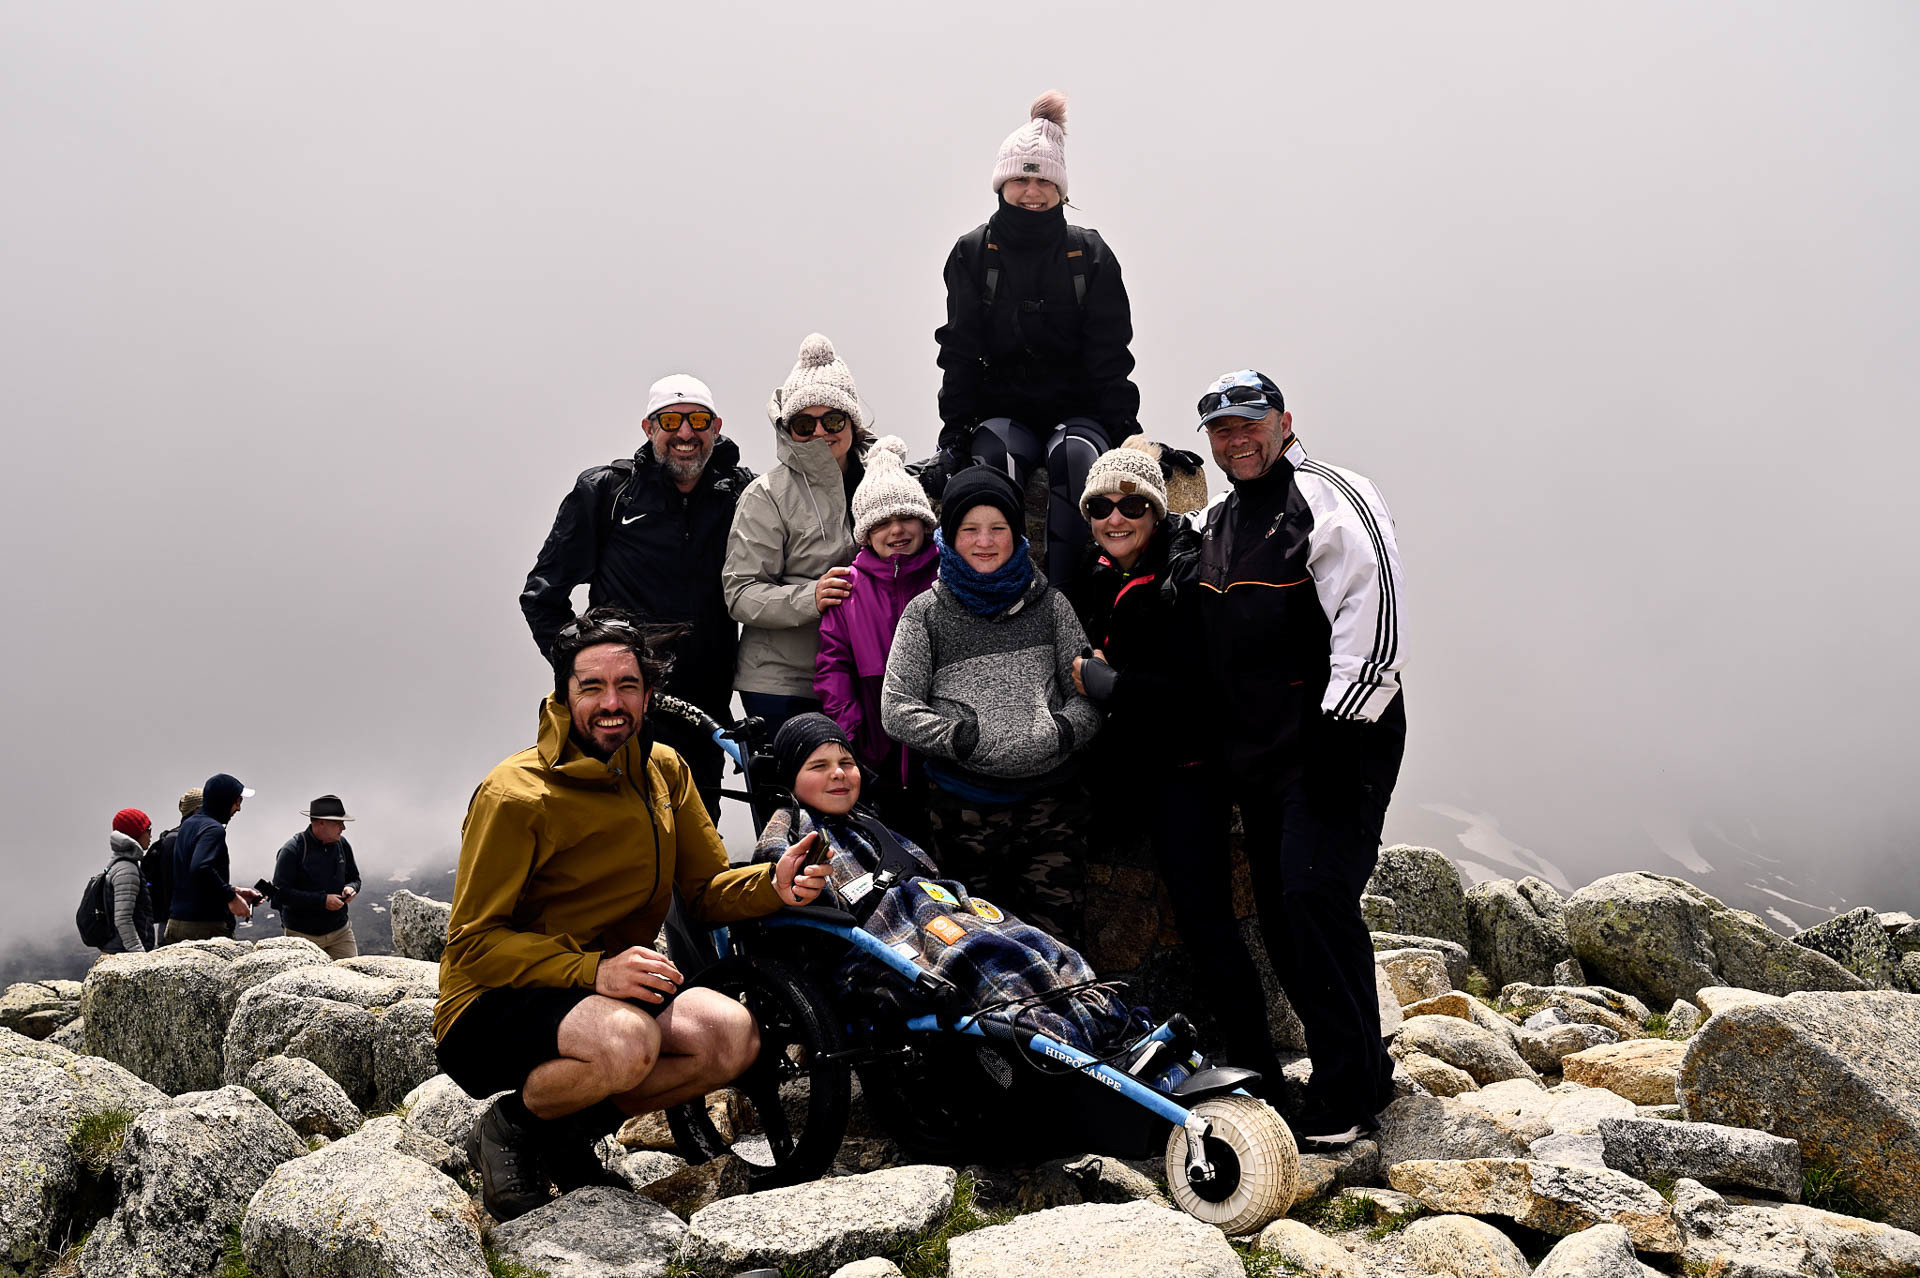 Group photos at the top of Australia, 4 Ideas for Accessible Adventures in NSW, joe kennedy, kosciuszko national park, summit track